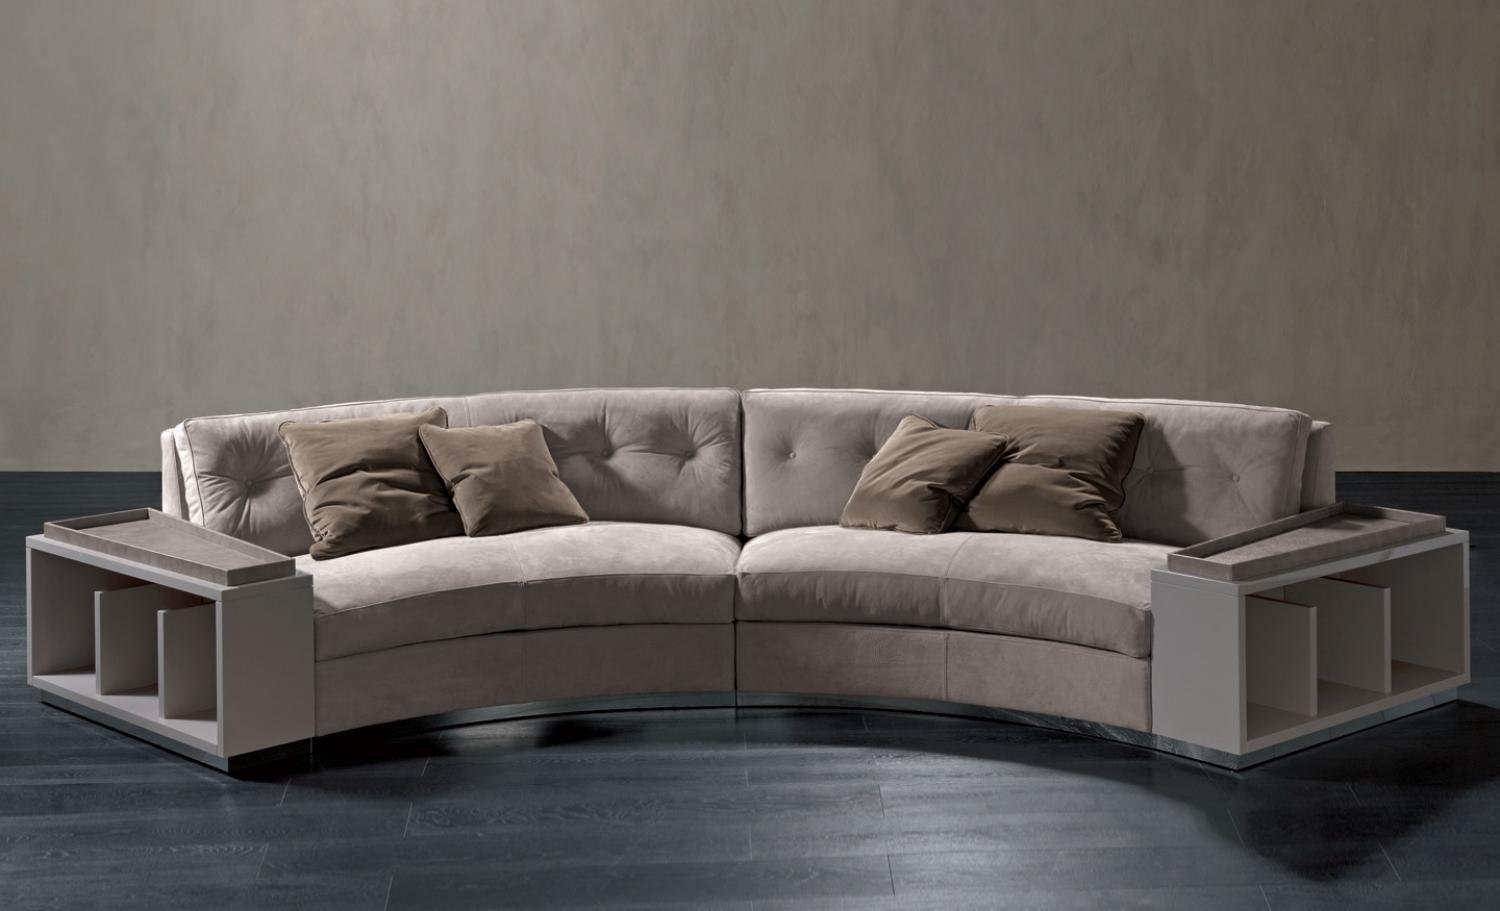 Semi Circular Sofa In Leather Circus, Rugiano – Luxury Furniture Mr Within Semicircular Sofa (Image 9 of 20)